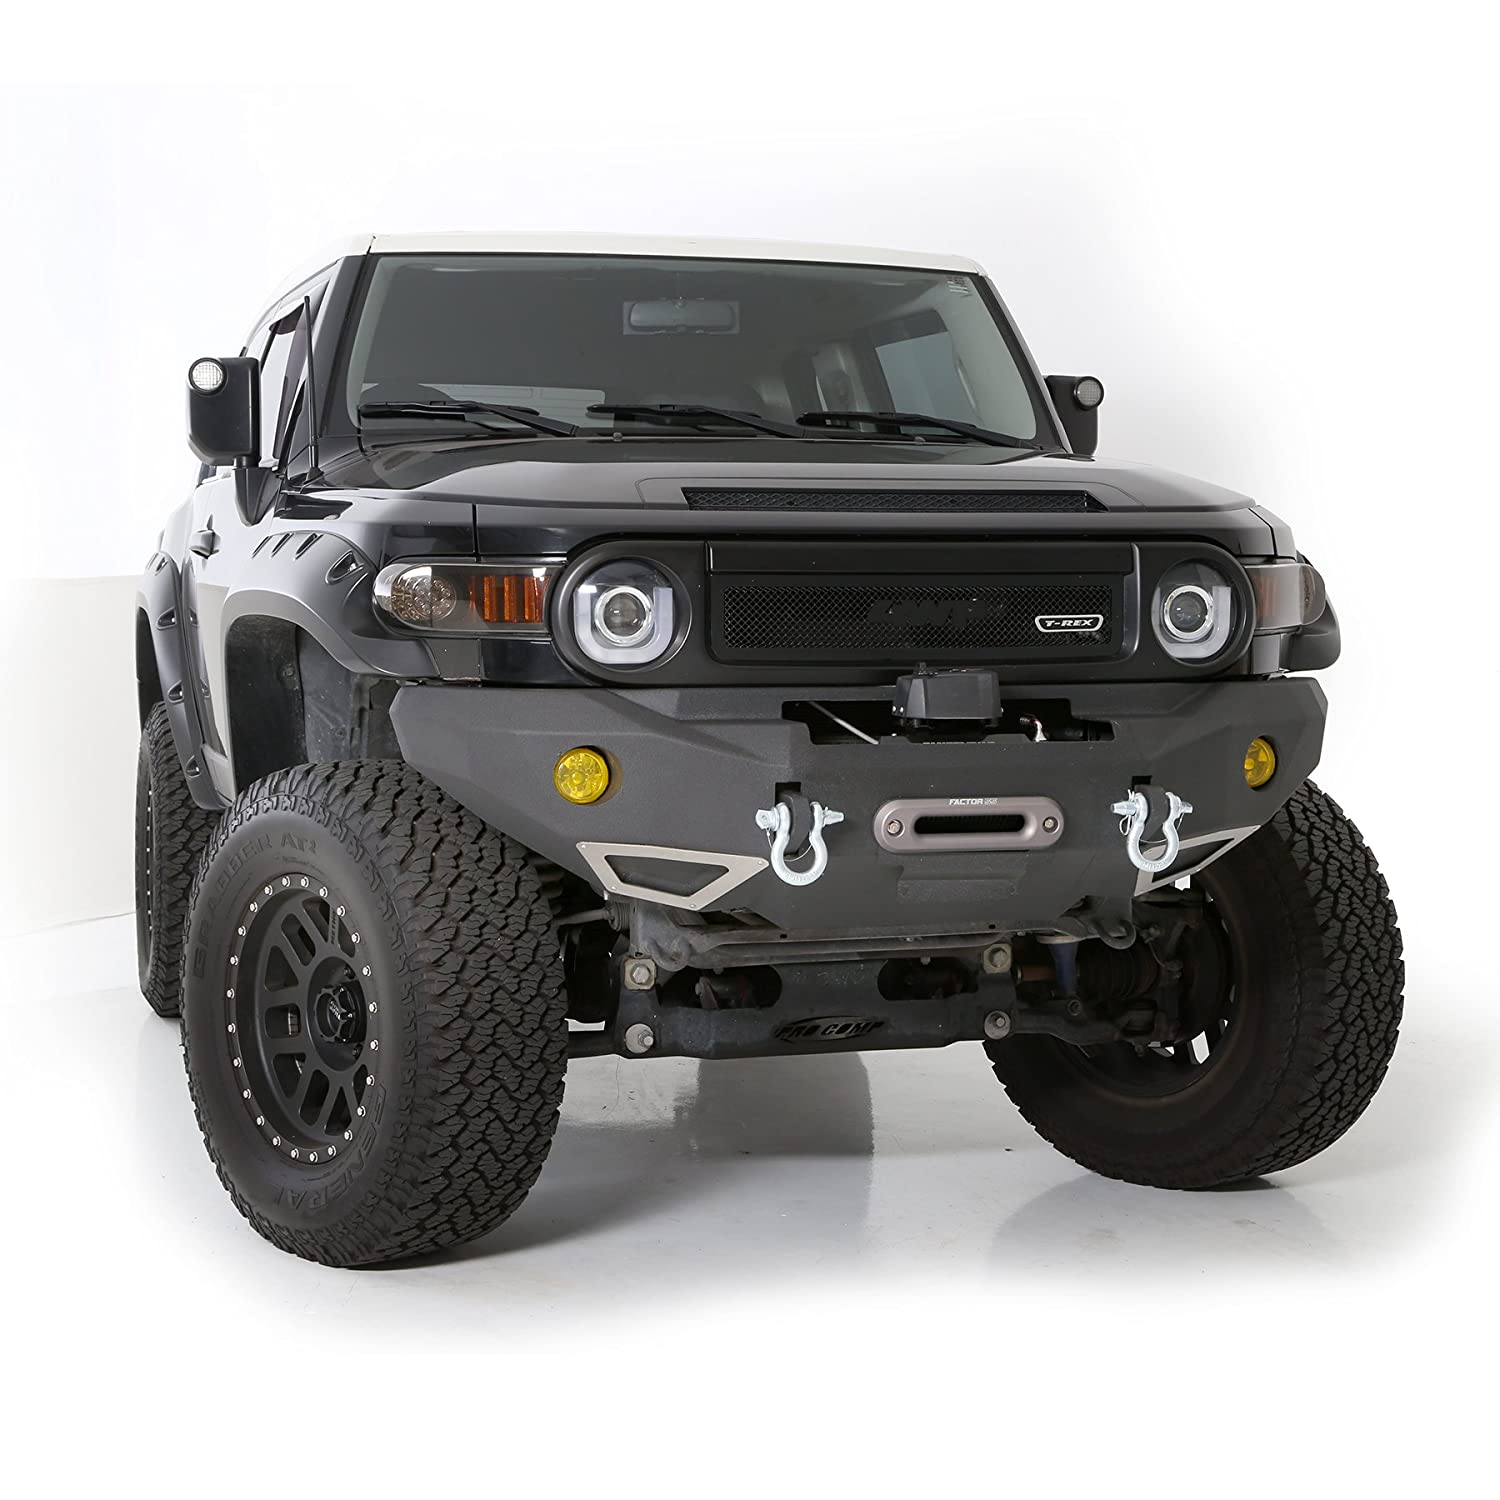 Smittybilt 612850 M1 Front Trunk Bumper For Toyota Fj Cruiser Auxiliary Lights Wiring Diagram Automotive